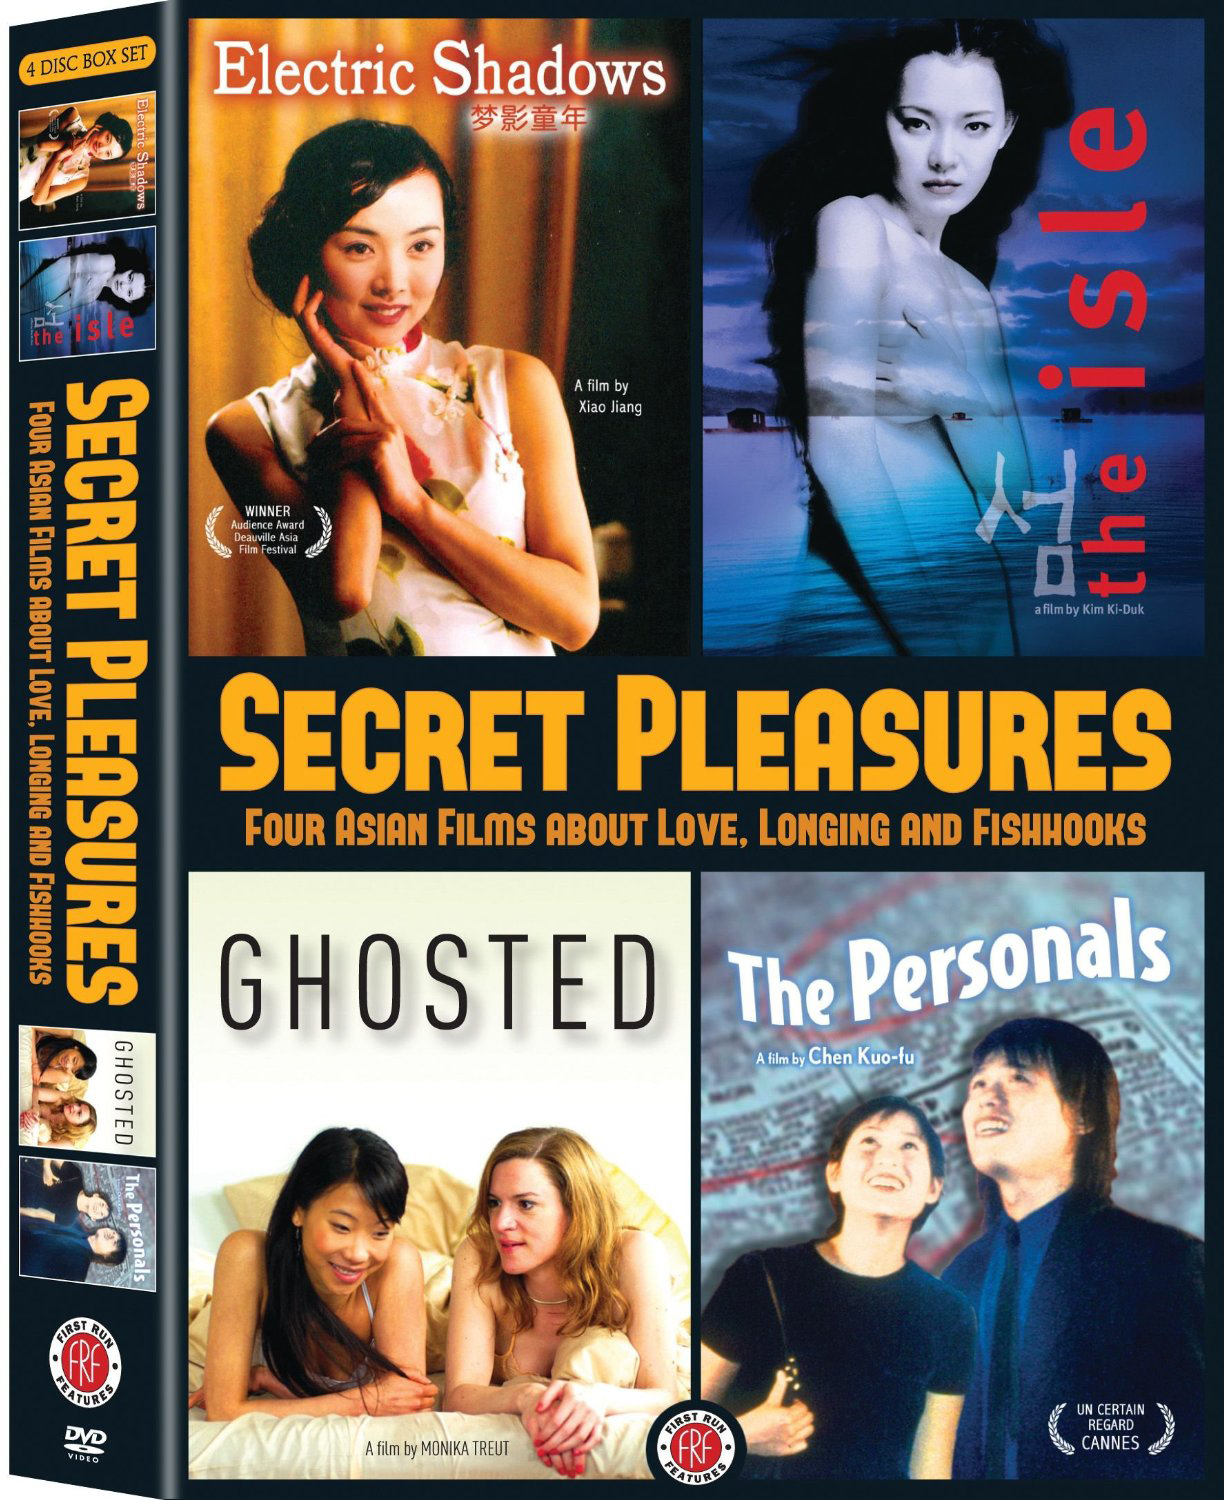 Secret Pleasures: Four Asian Films about Love, Longing and Fishhooks DVD  Set (First